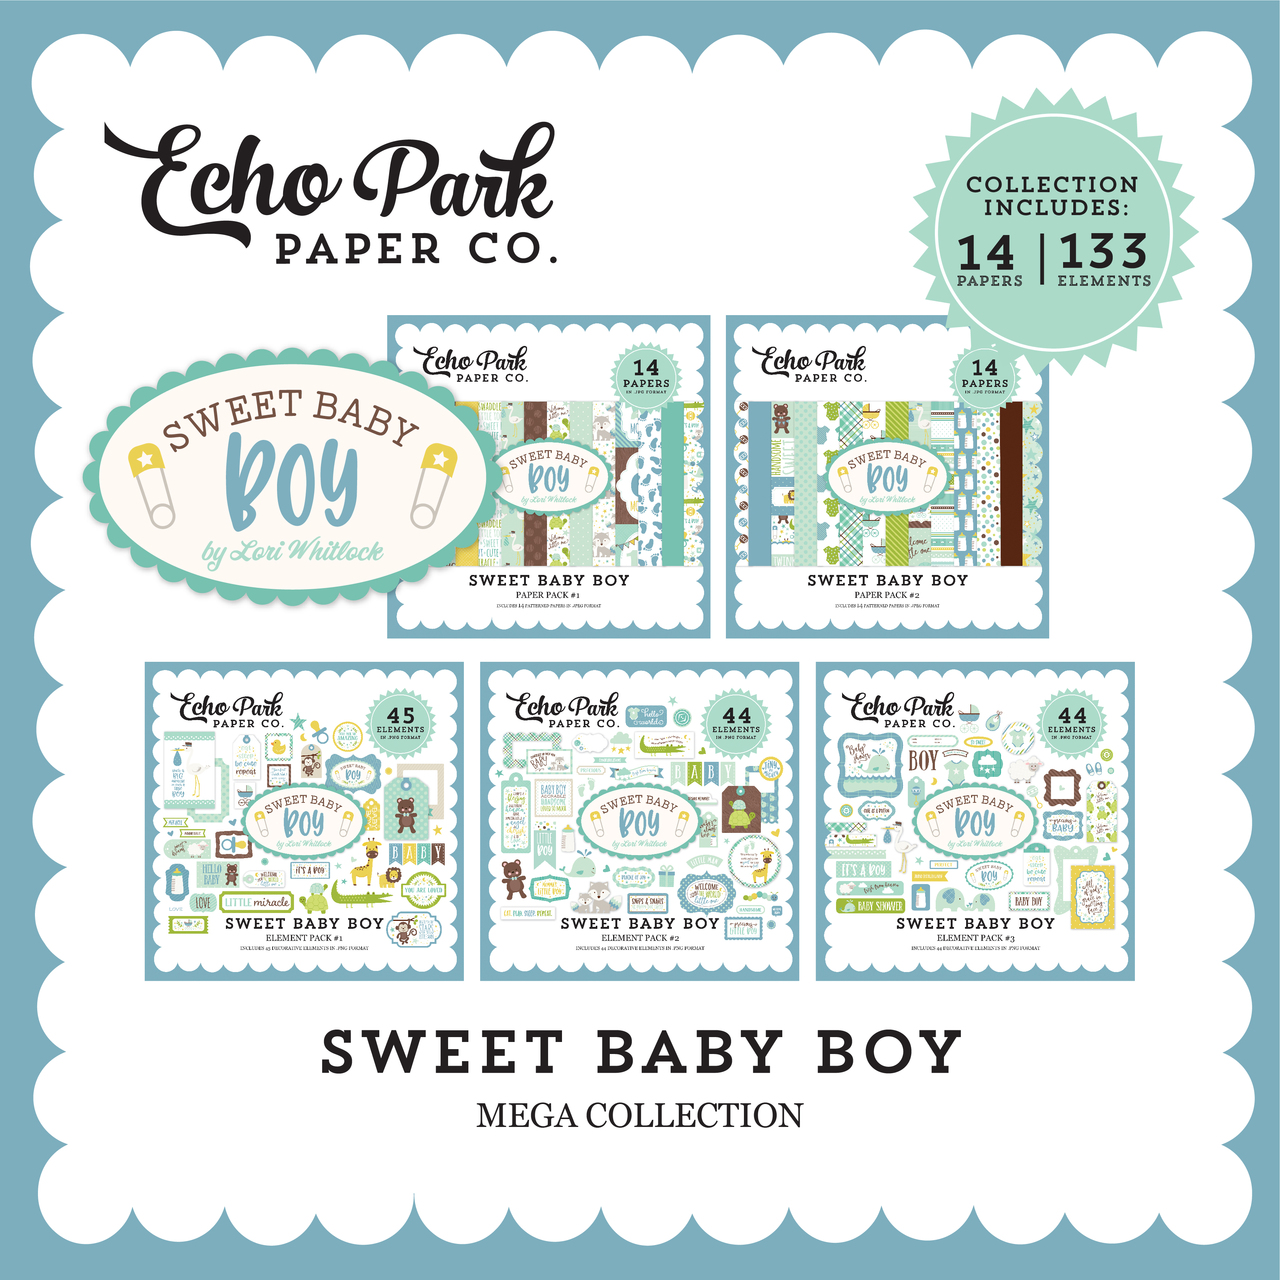 Sweet Baby Boy Mega Collection